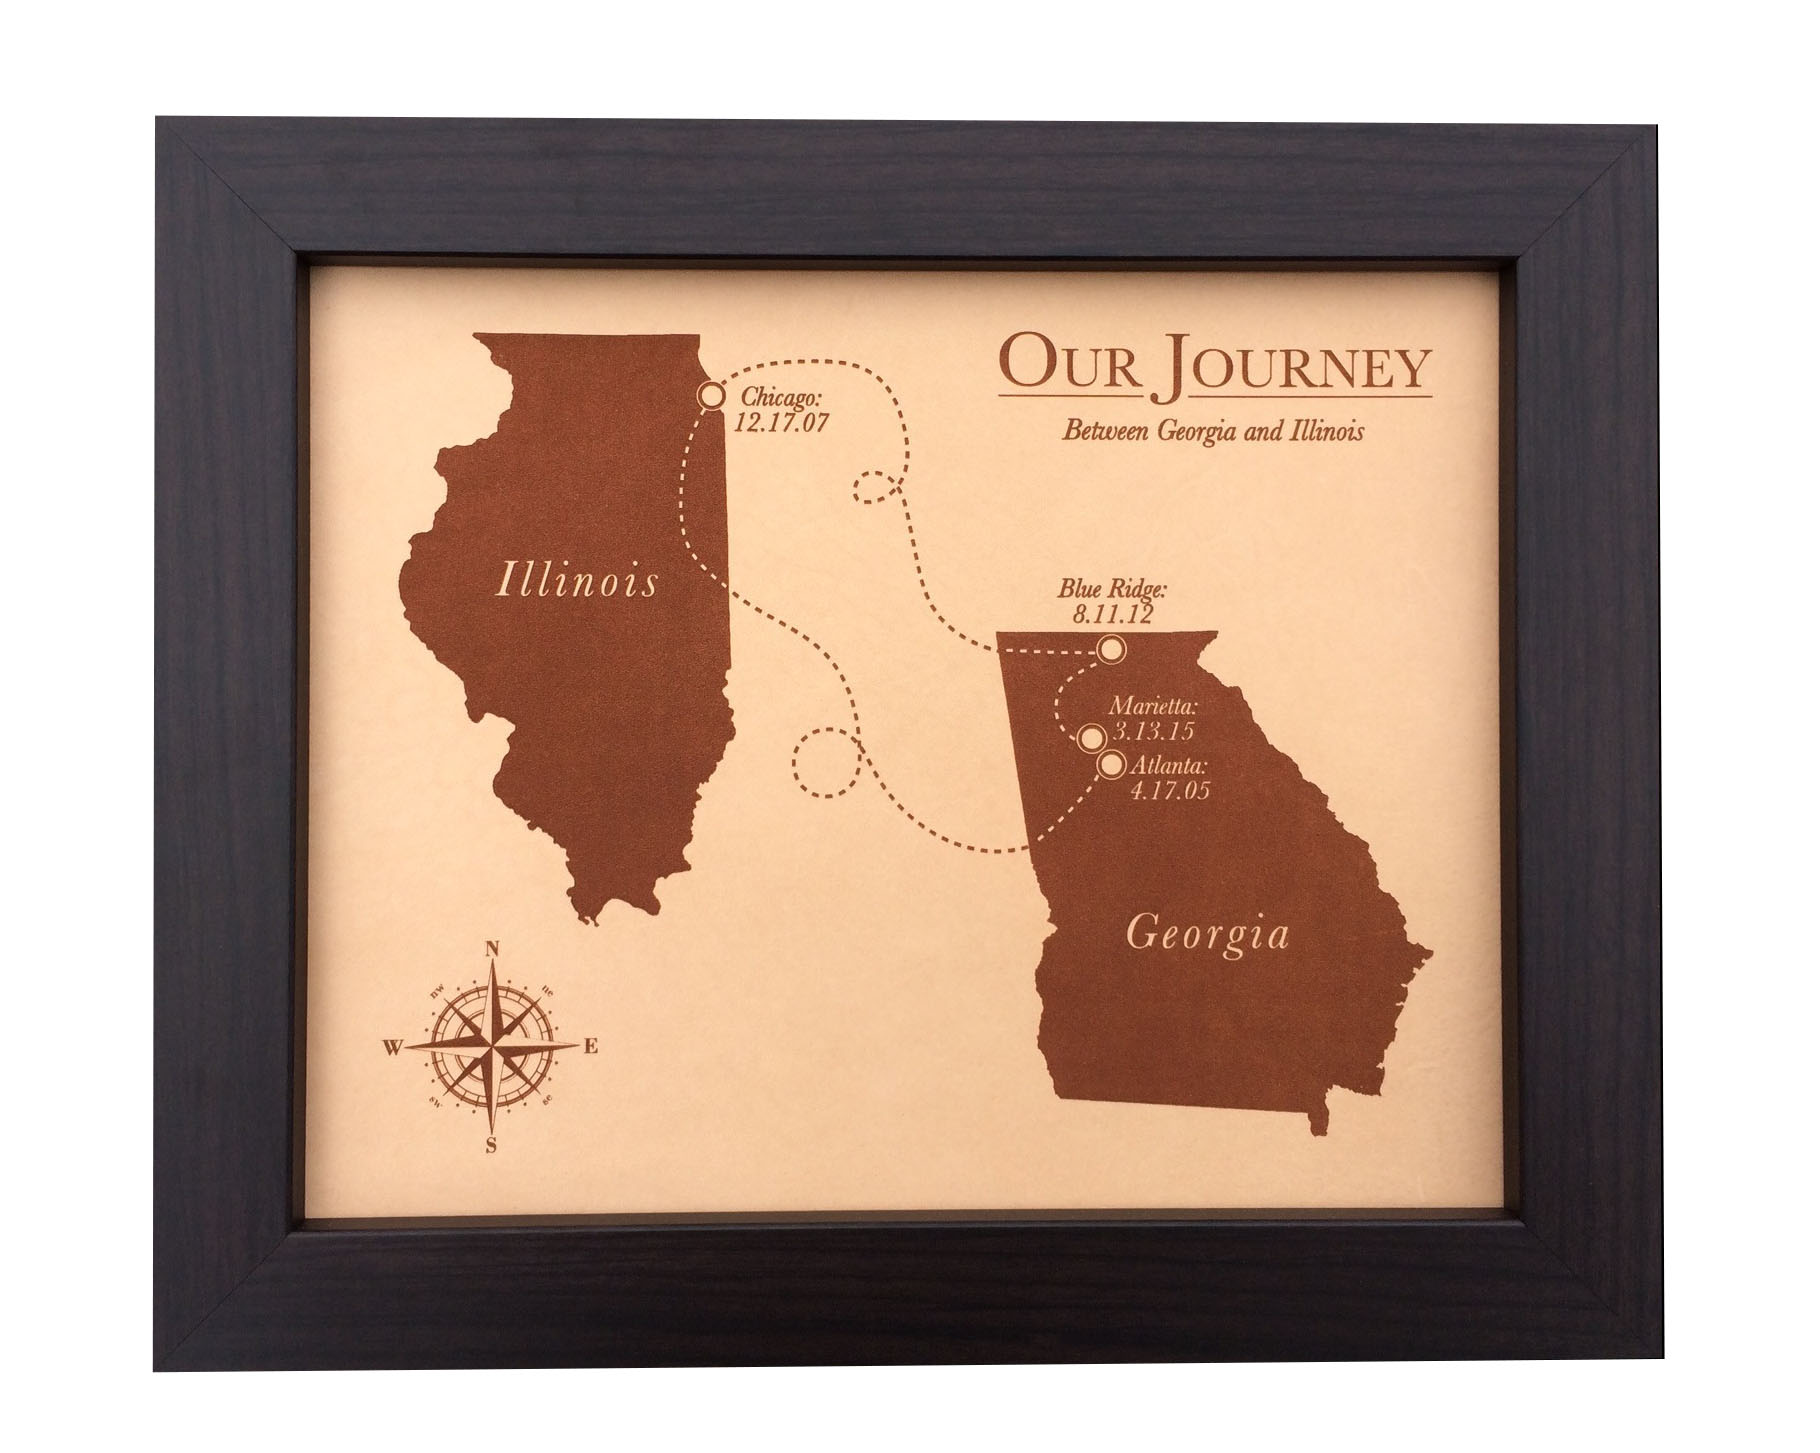 9th Wedding Anniversary Gift Leather: Leather Keepsake Map Of Where Your